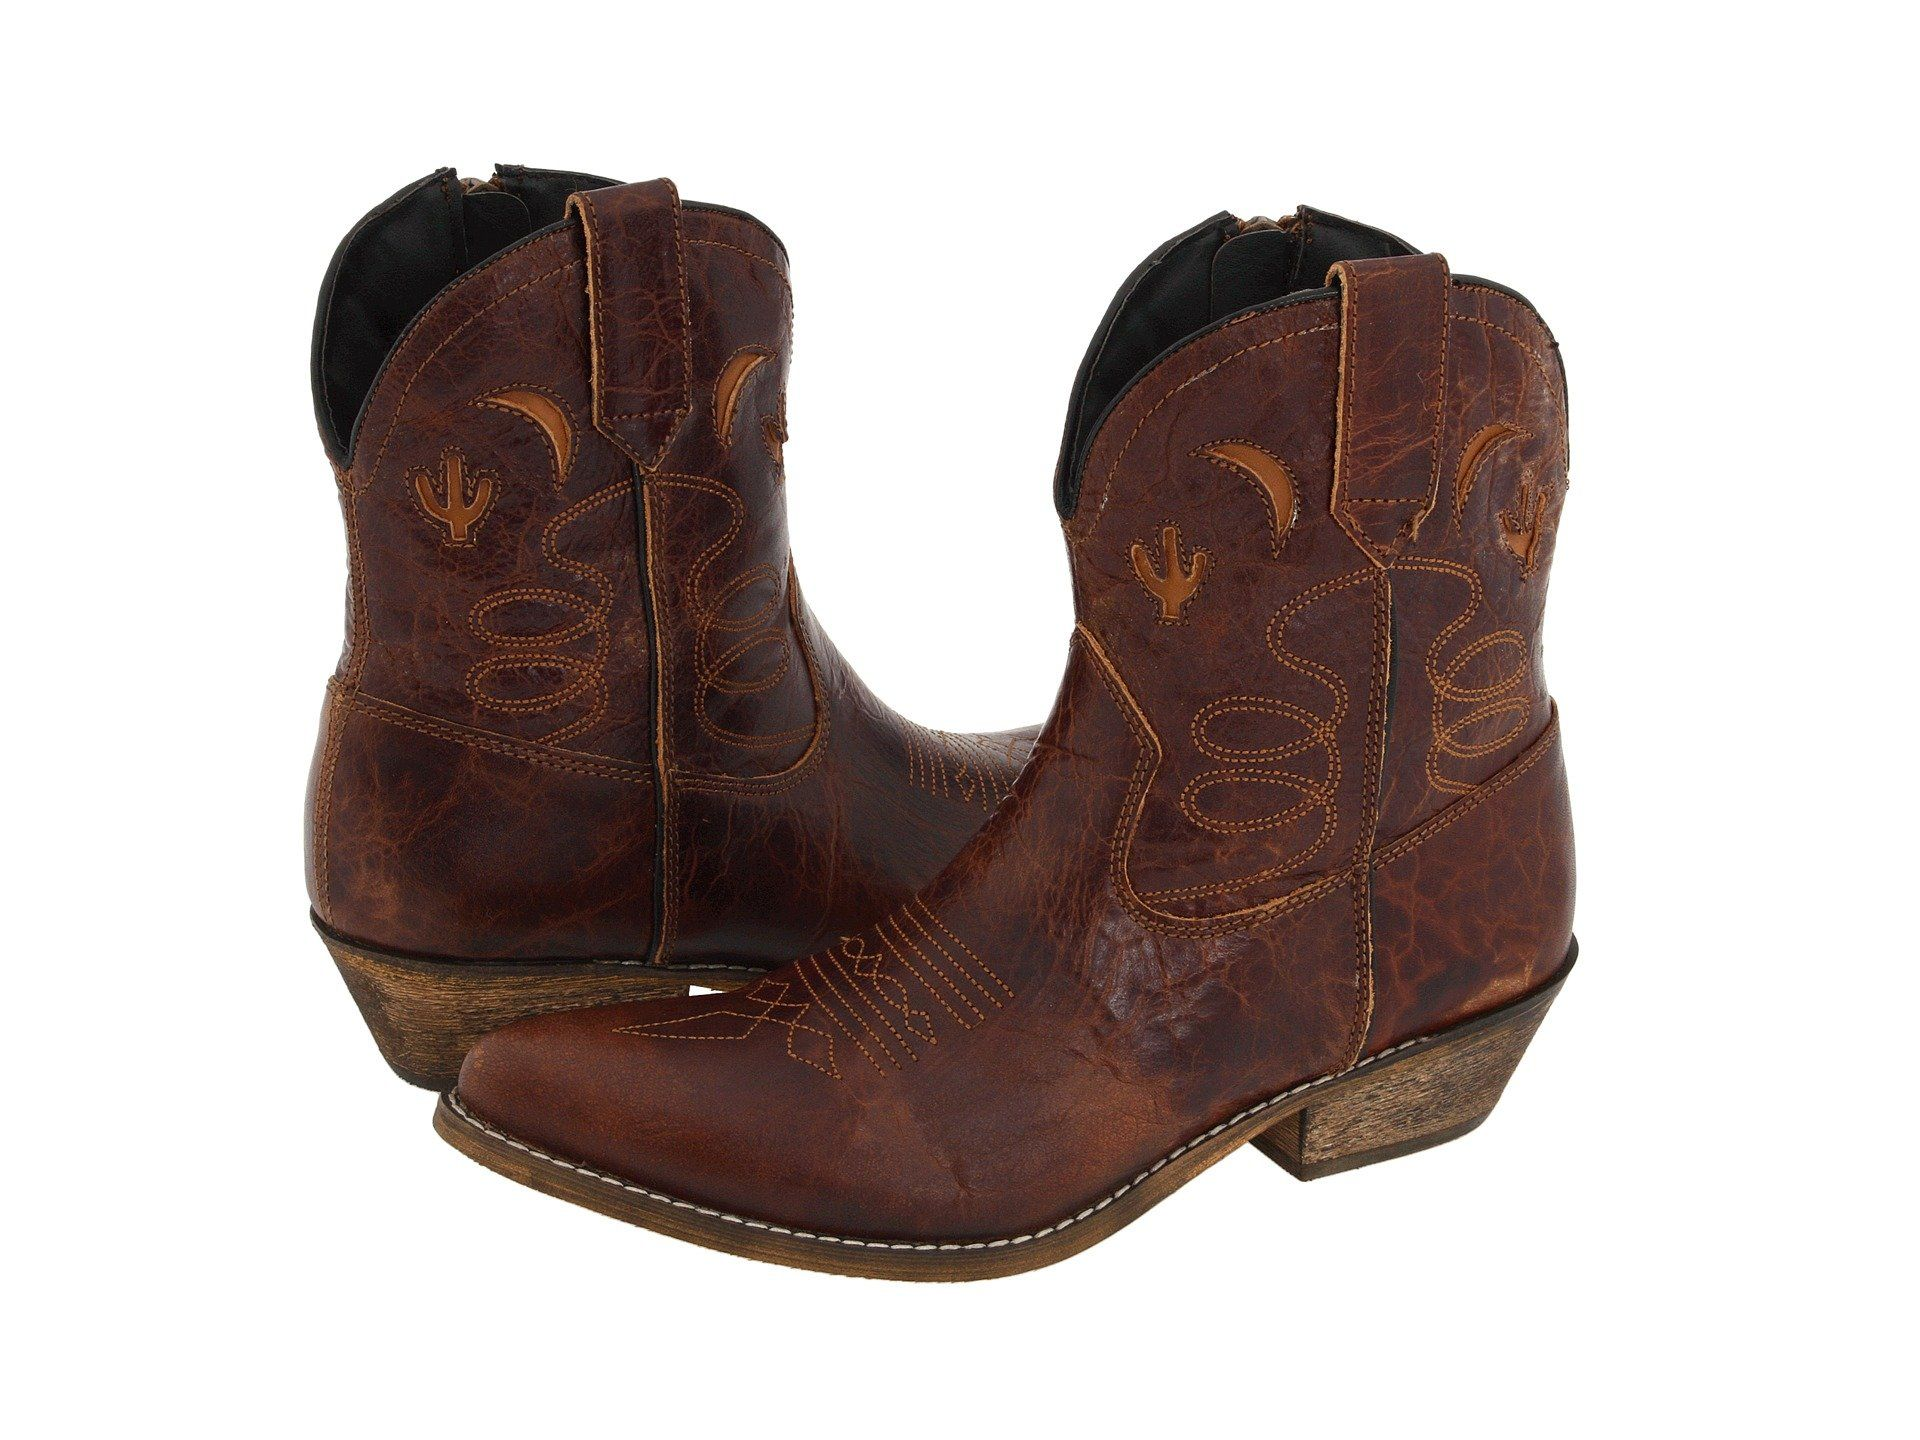 20 Best Cowboy Boots for Women in 2020